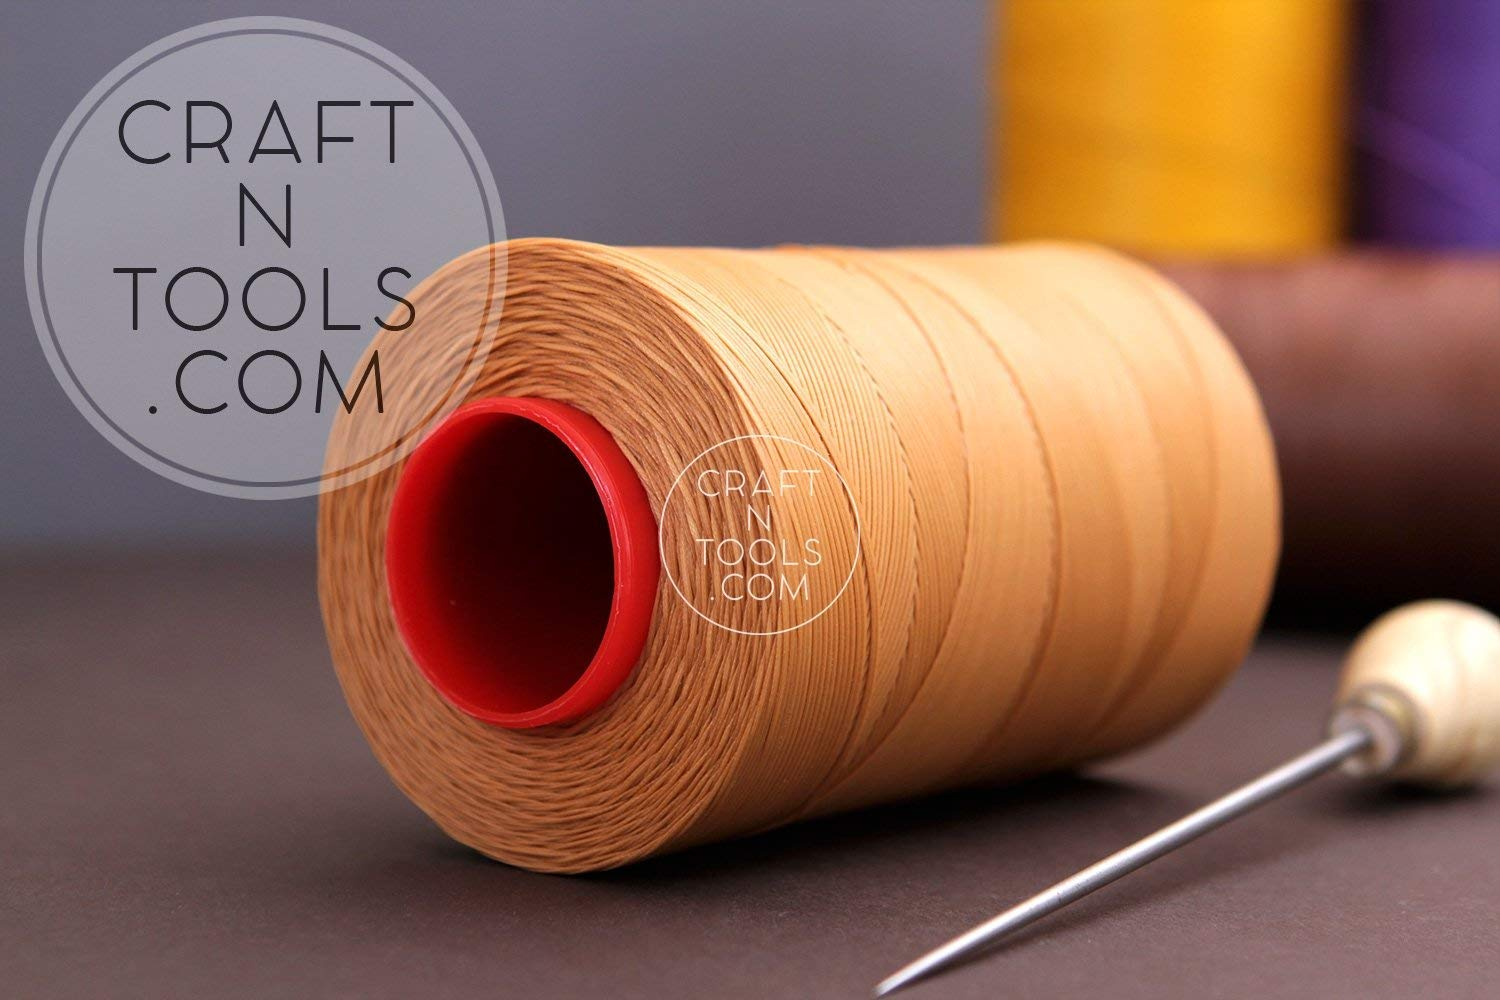 0.6mm Colonial (Tan) Ritza 25 Tiger Waxed Polyester Thread 25-1000m length (25m). Julius Koch Leather Hand Sewing Thread